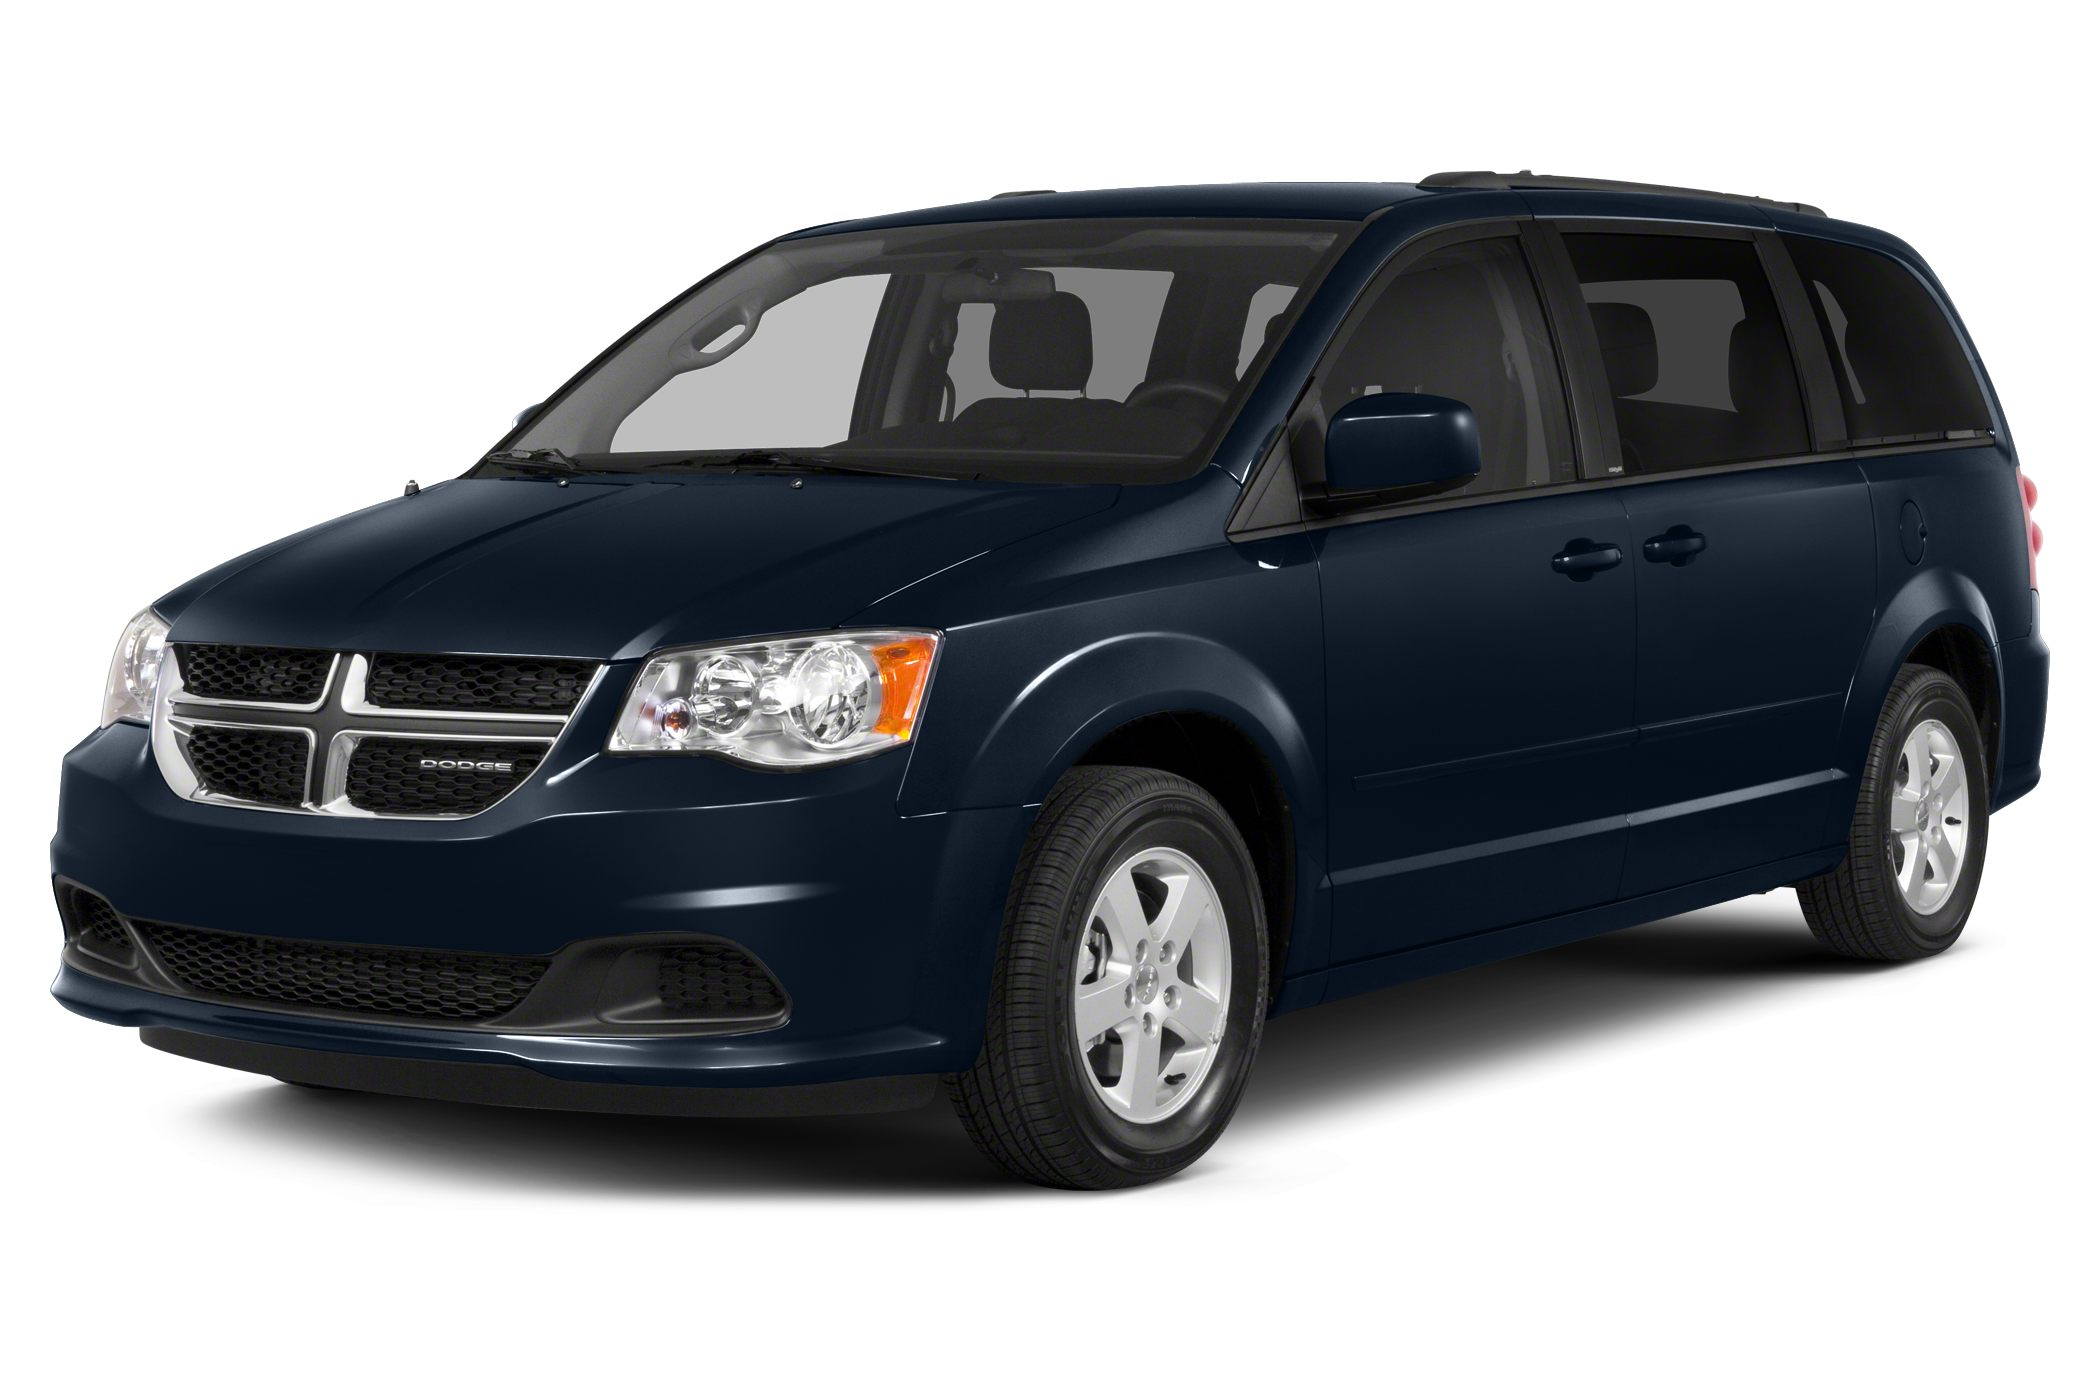 2014 Dodge Grand Caravan SXT Minivan for sale in Decatur for $17,990 with 27,651 miles